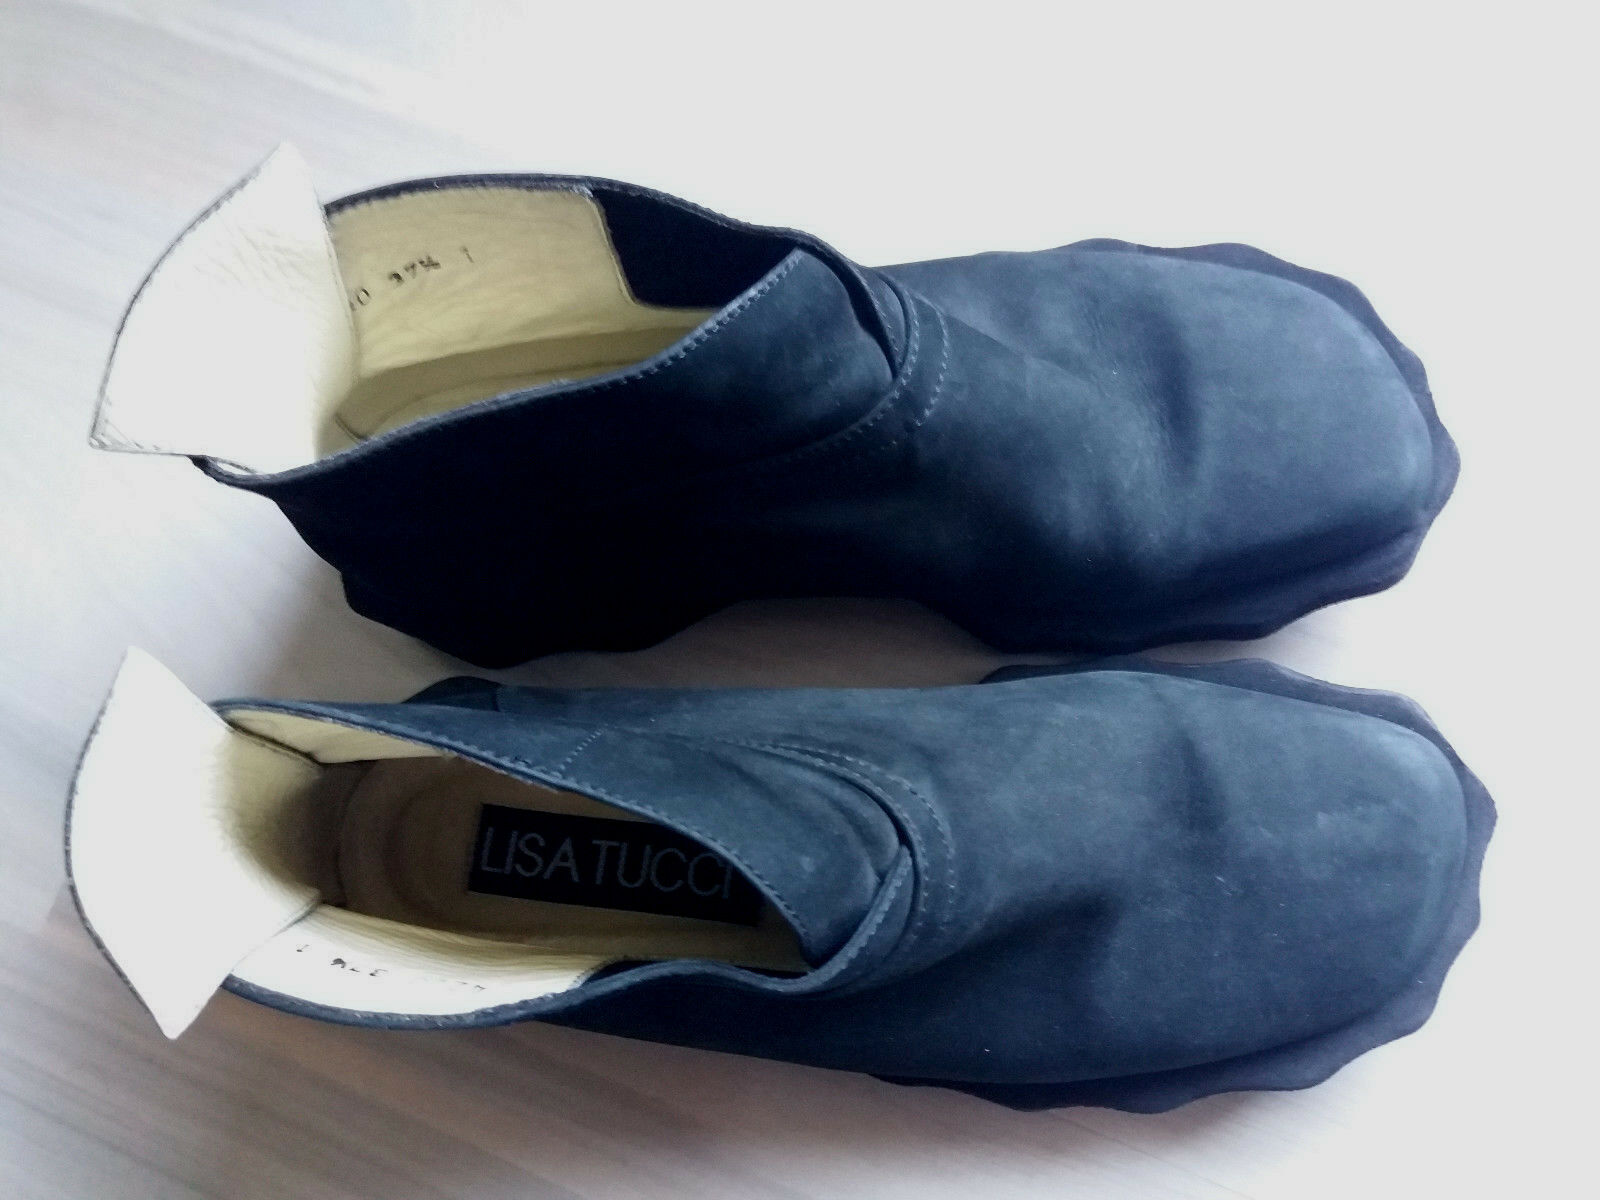 Lisa Tucci Chelsea Boots Gr.37,5